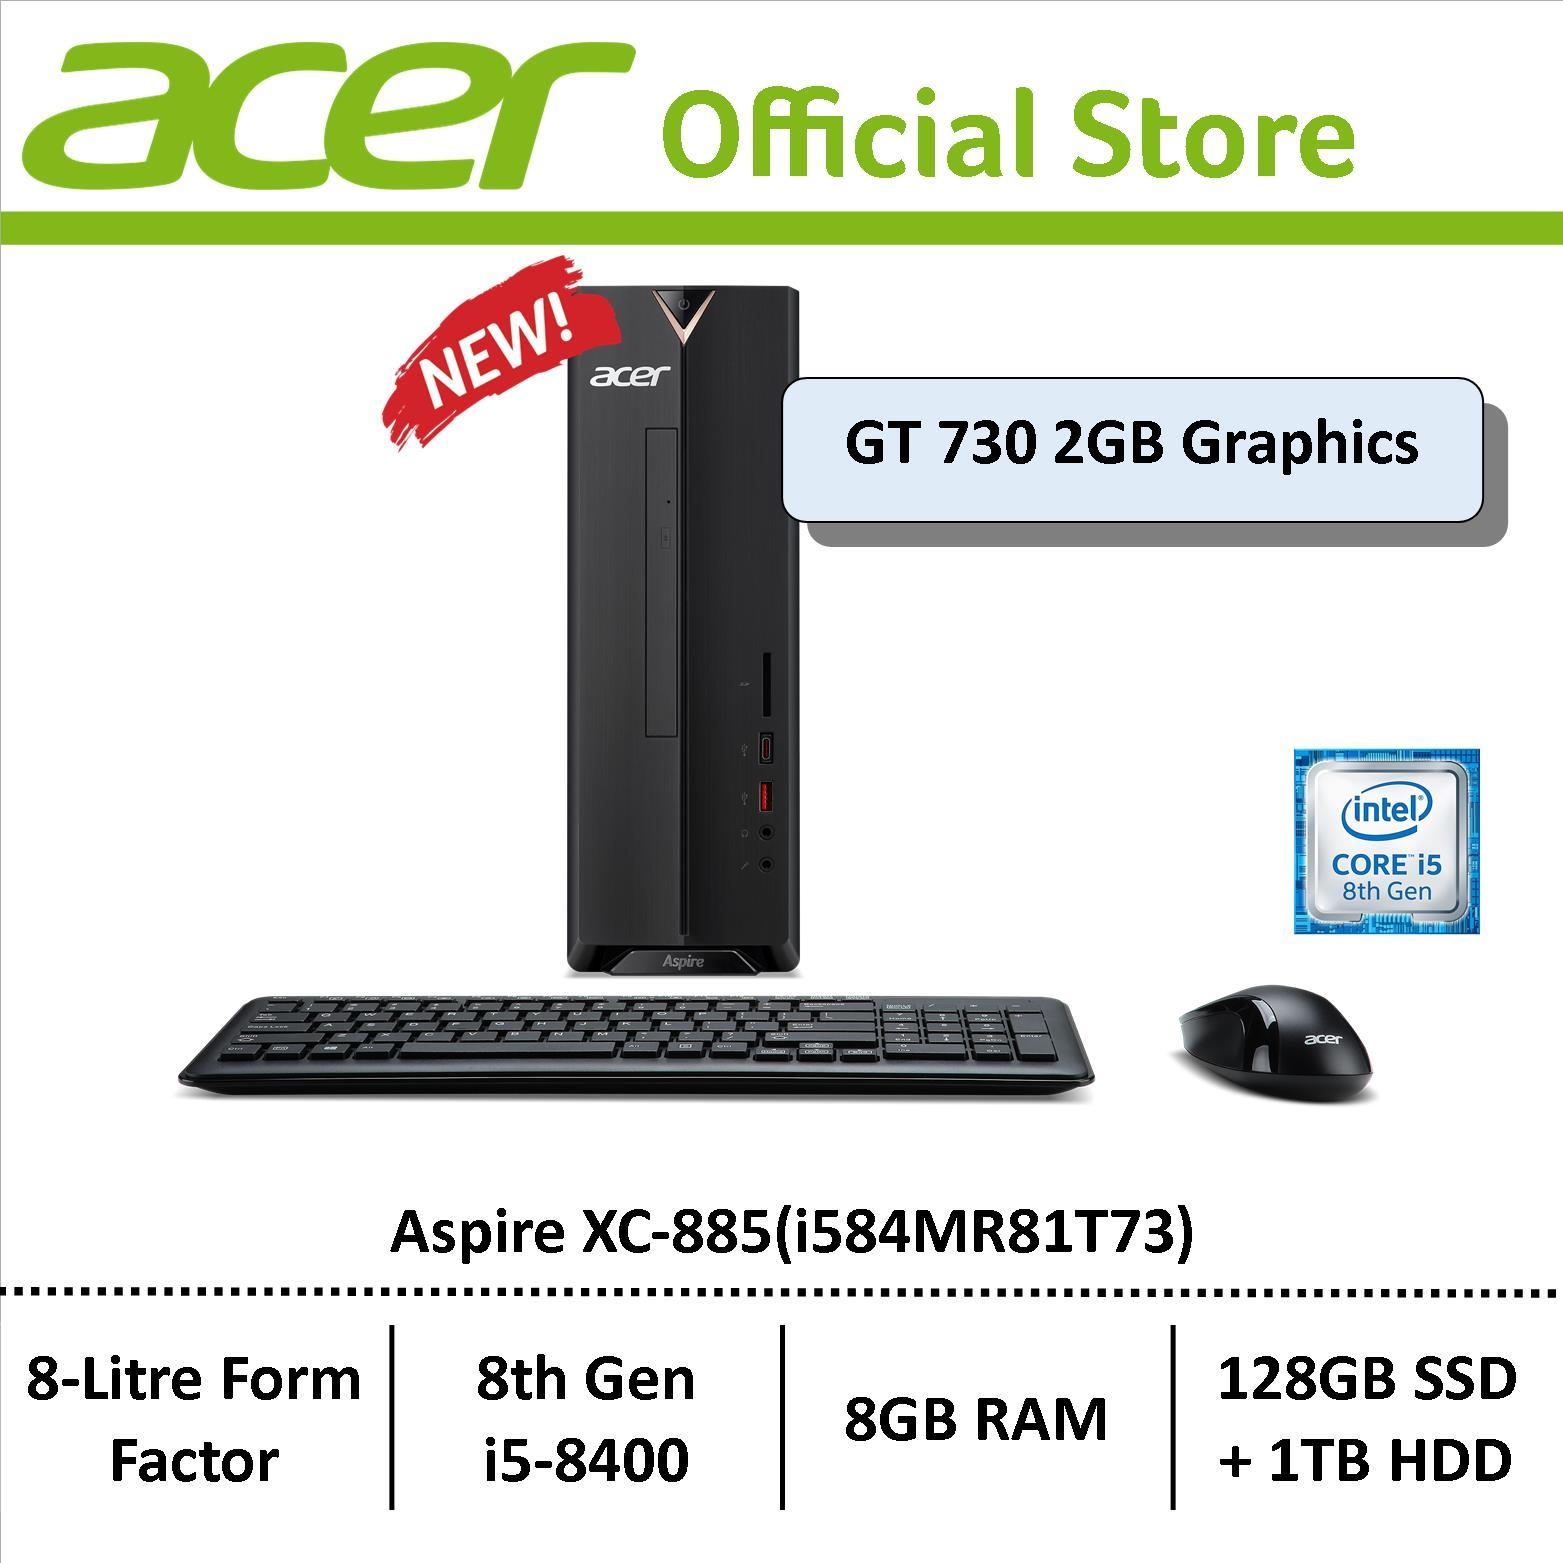 Acer Aspire Xc-885 (i584mr81t73) Mini-Desktop By Acer Official Store.